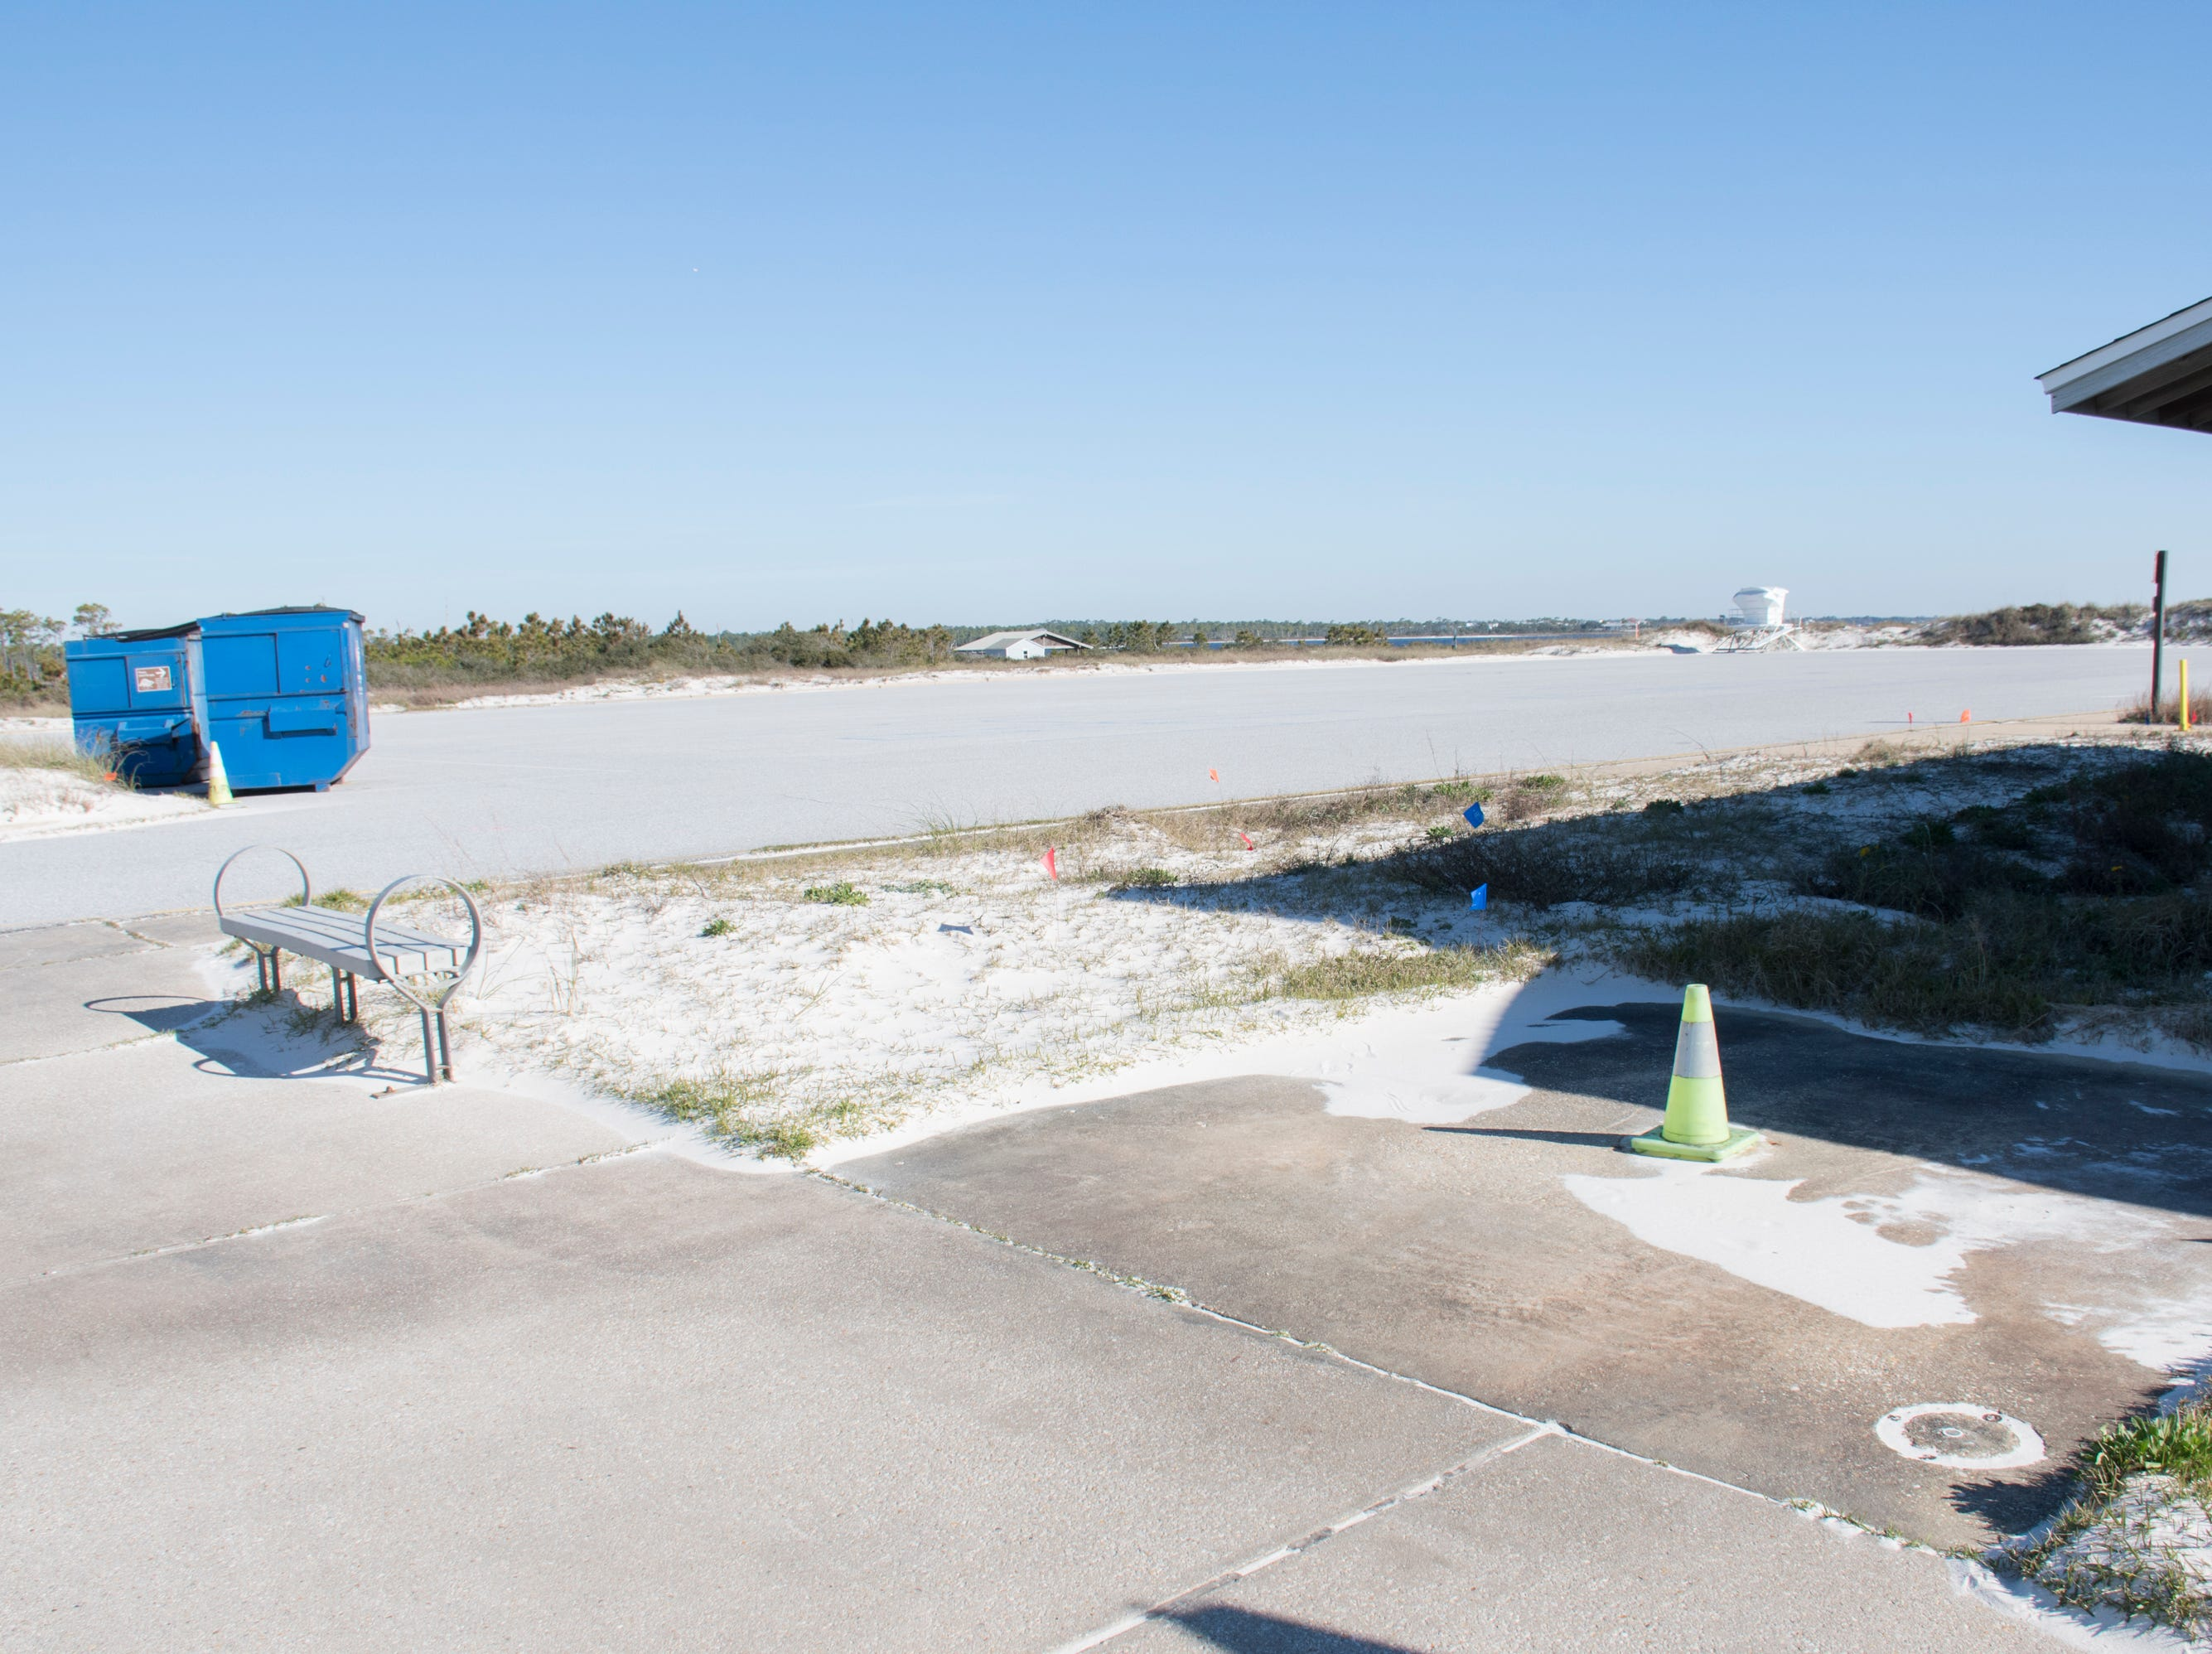 The parking lot is empty at Gulf Islands National Seashore's Rosamond Johnson Beach since the National Park in Perdido Key is closed due to the federal government shutdown on Friday, January 11, 2019.